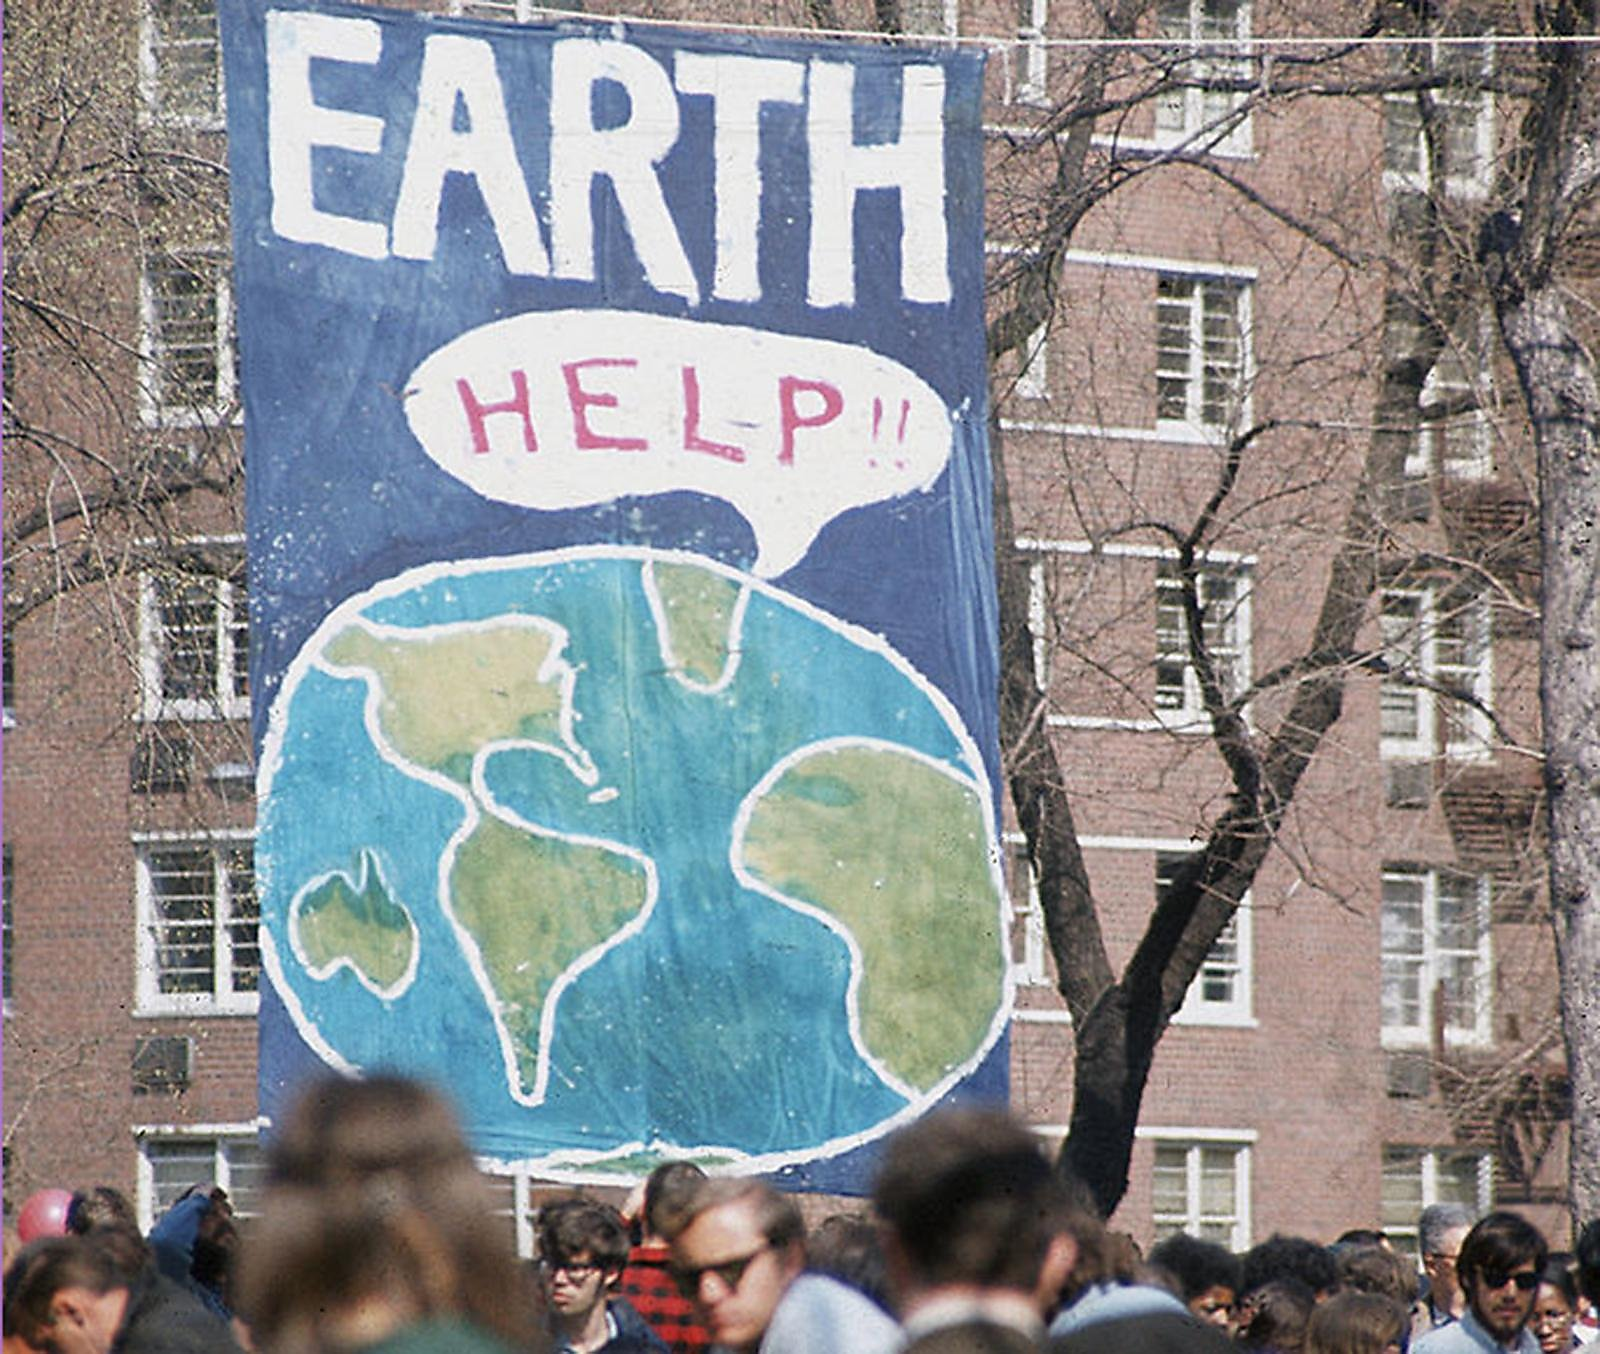 Earth Day 2020 should be Nov. 3